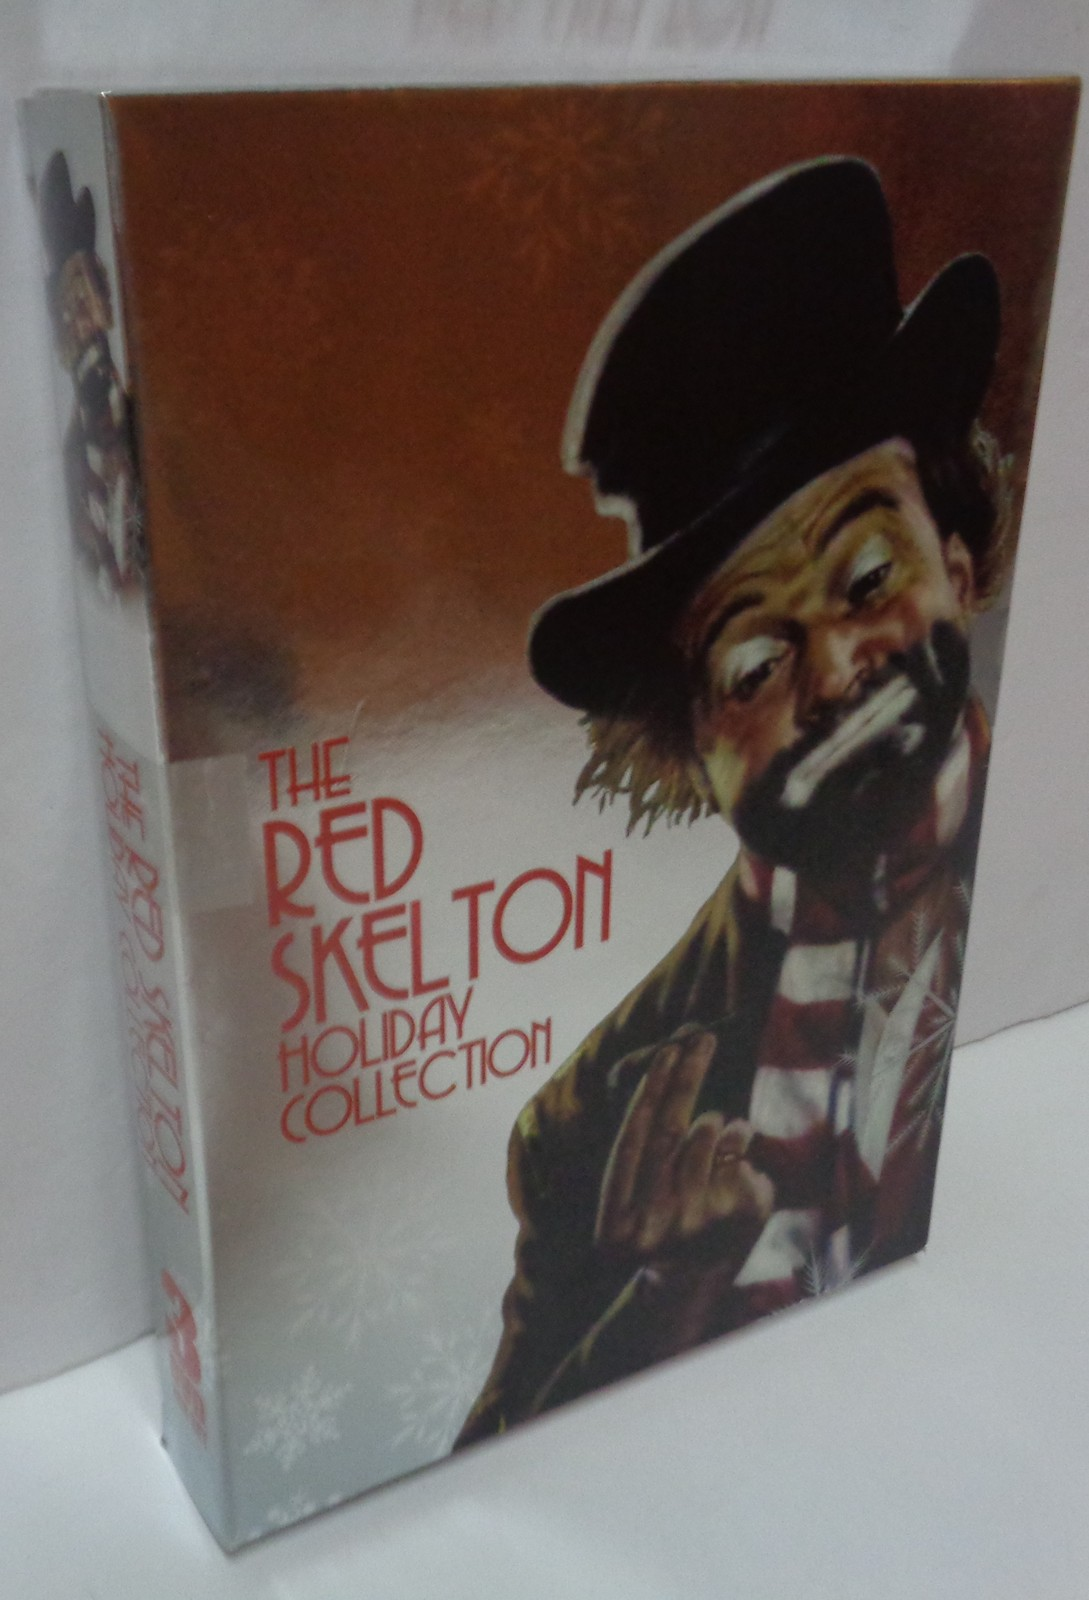 New Sealed Red Skelton Christmas DVD Set Holiday Collection 374#19